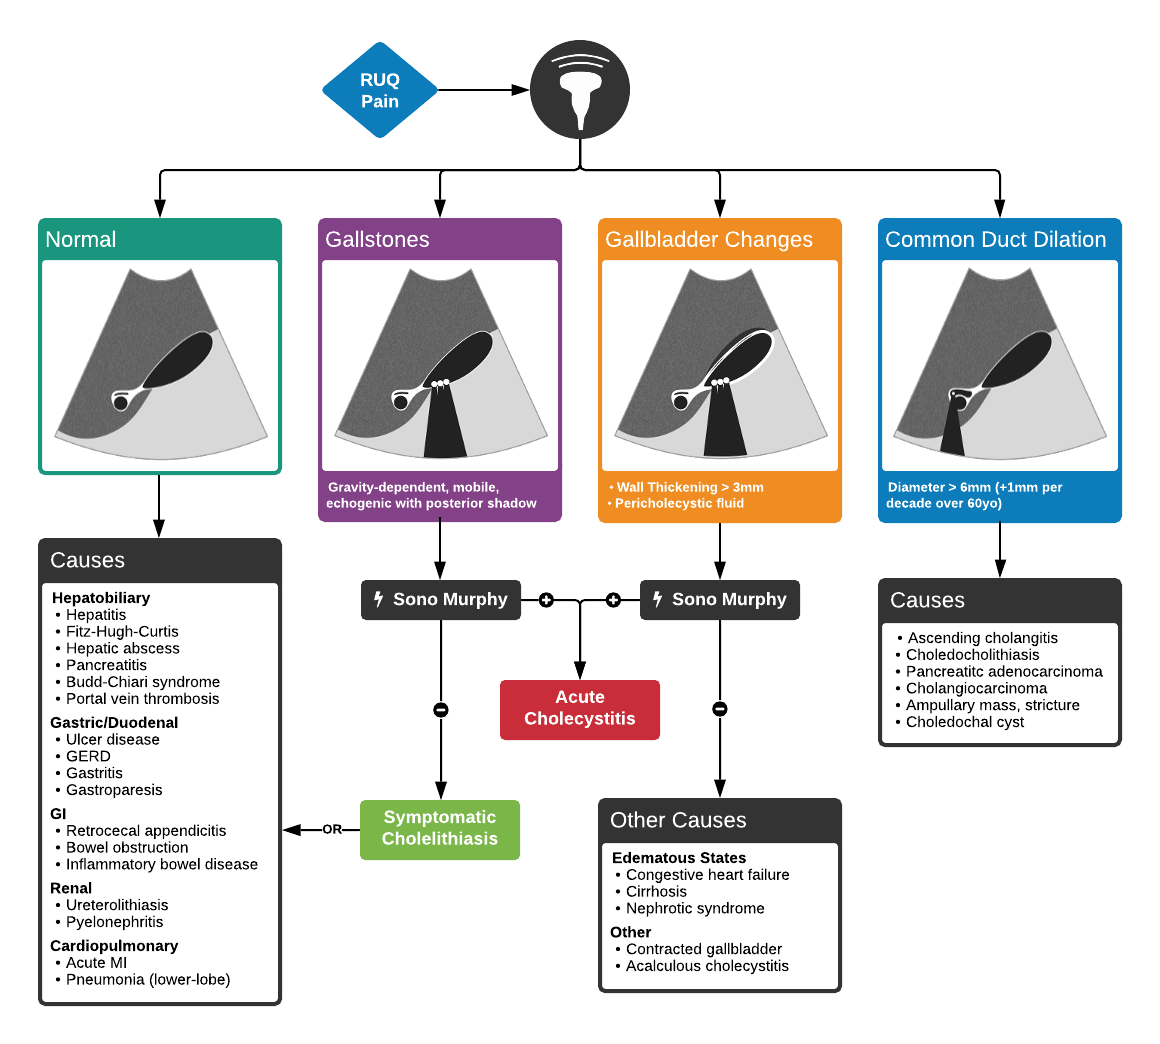 Algorithm for the Use of Ultrasound in the Evaluation of Right Upper Quadrant Abdominal Pain